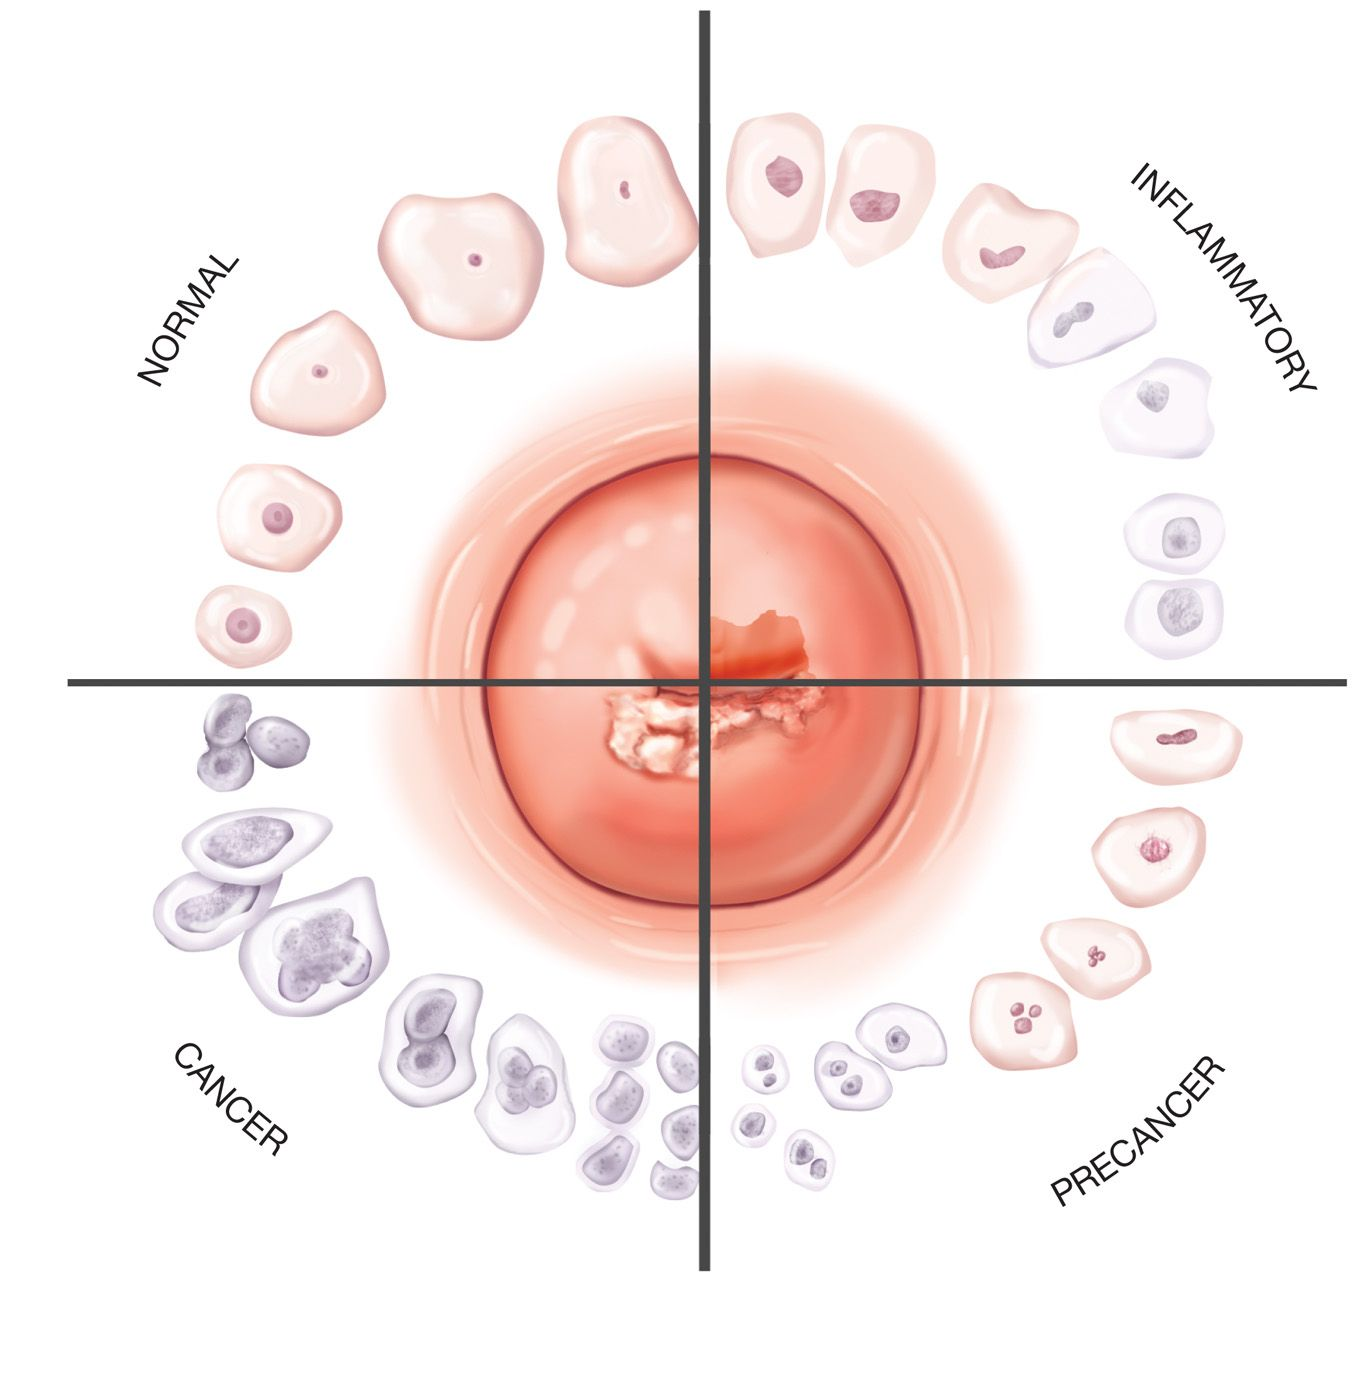 Pap smear. Cells of the cervix (shown in the center) change in ...